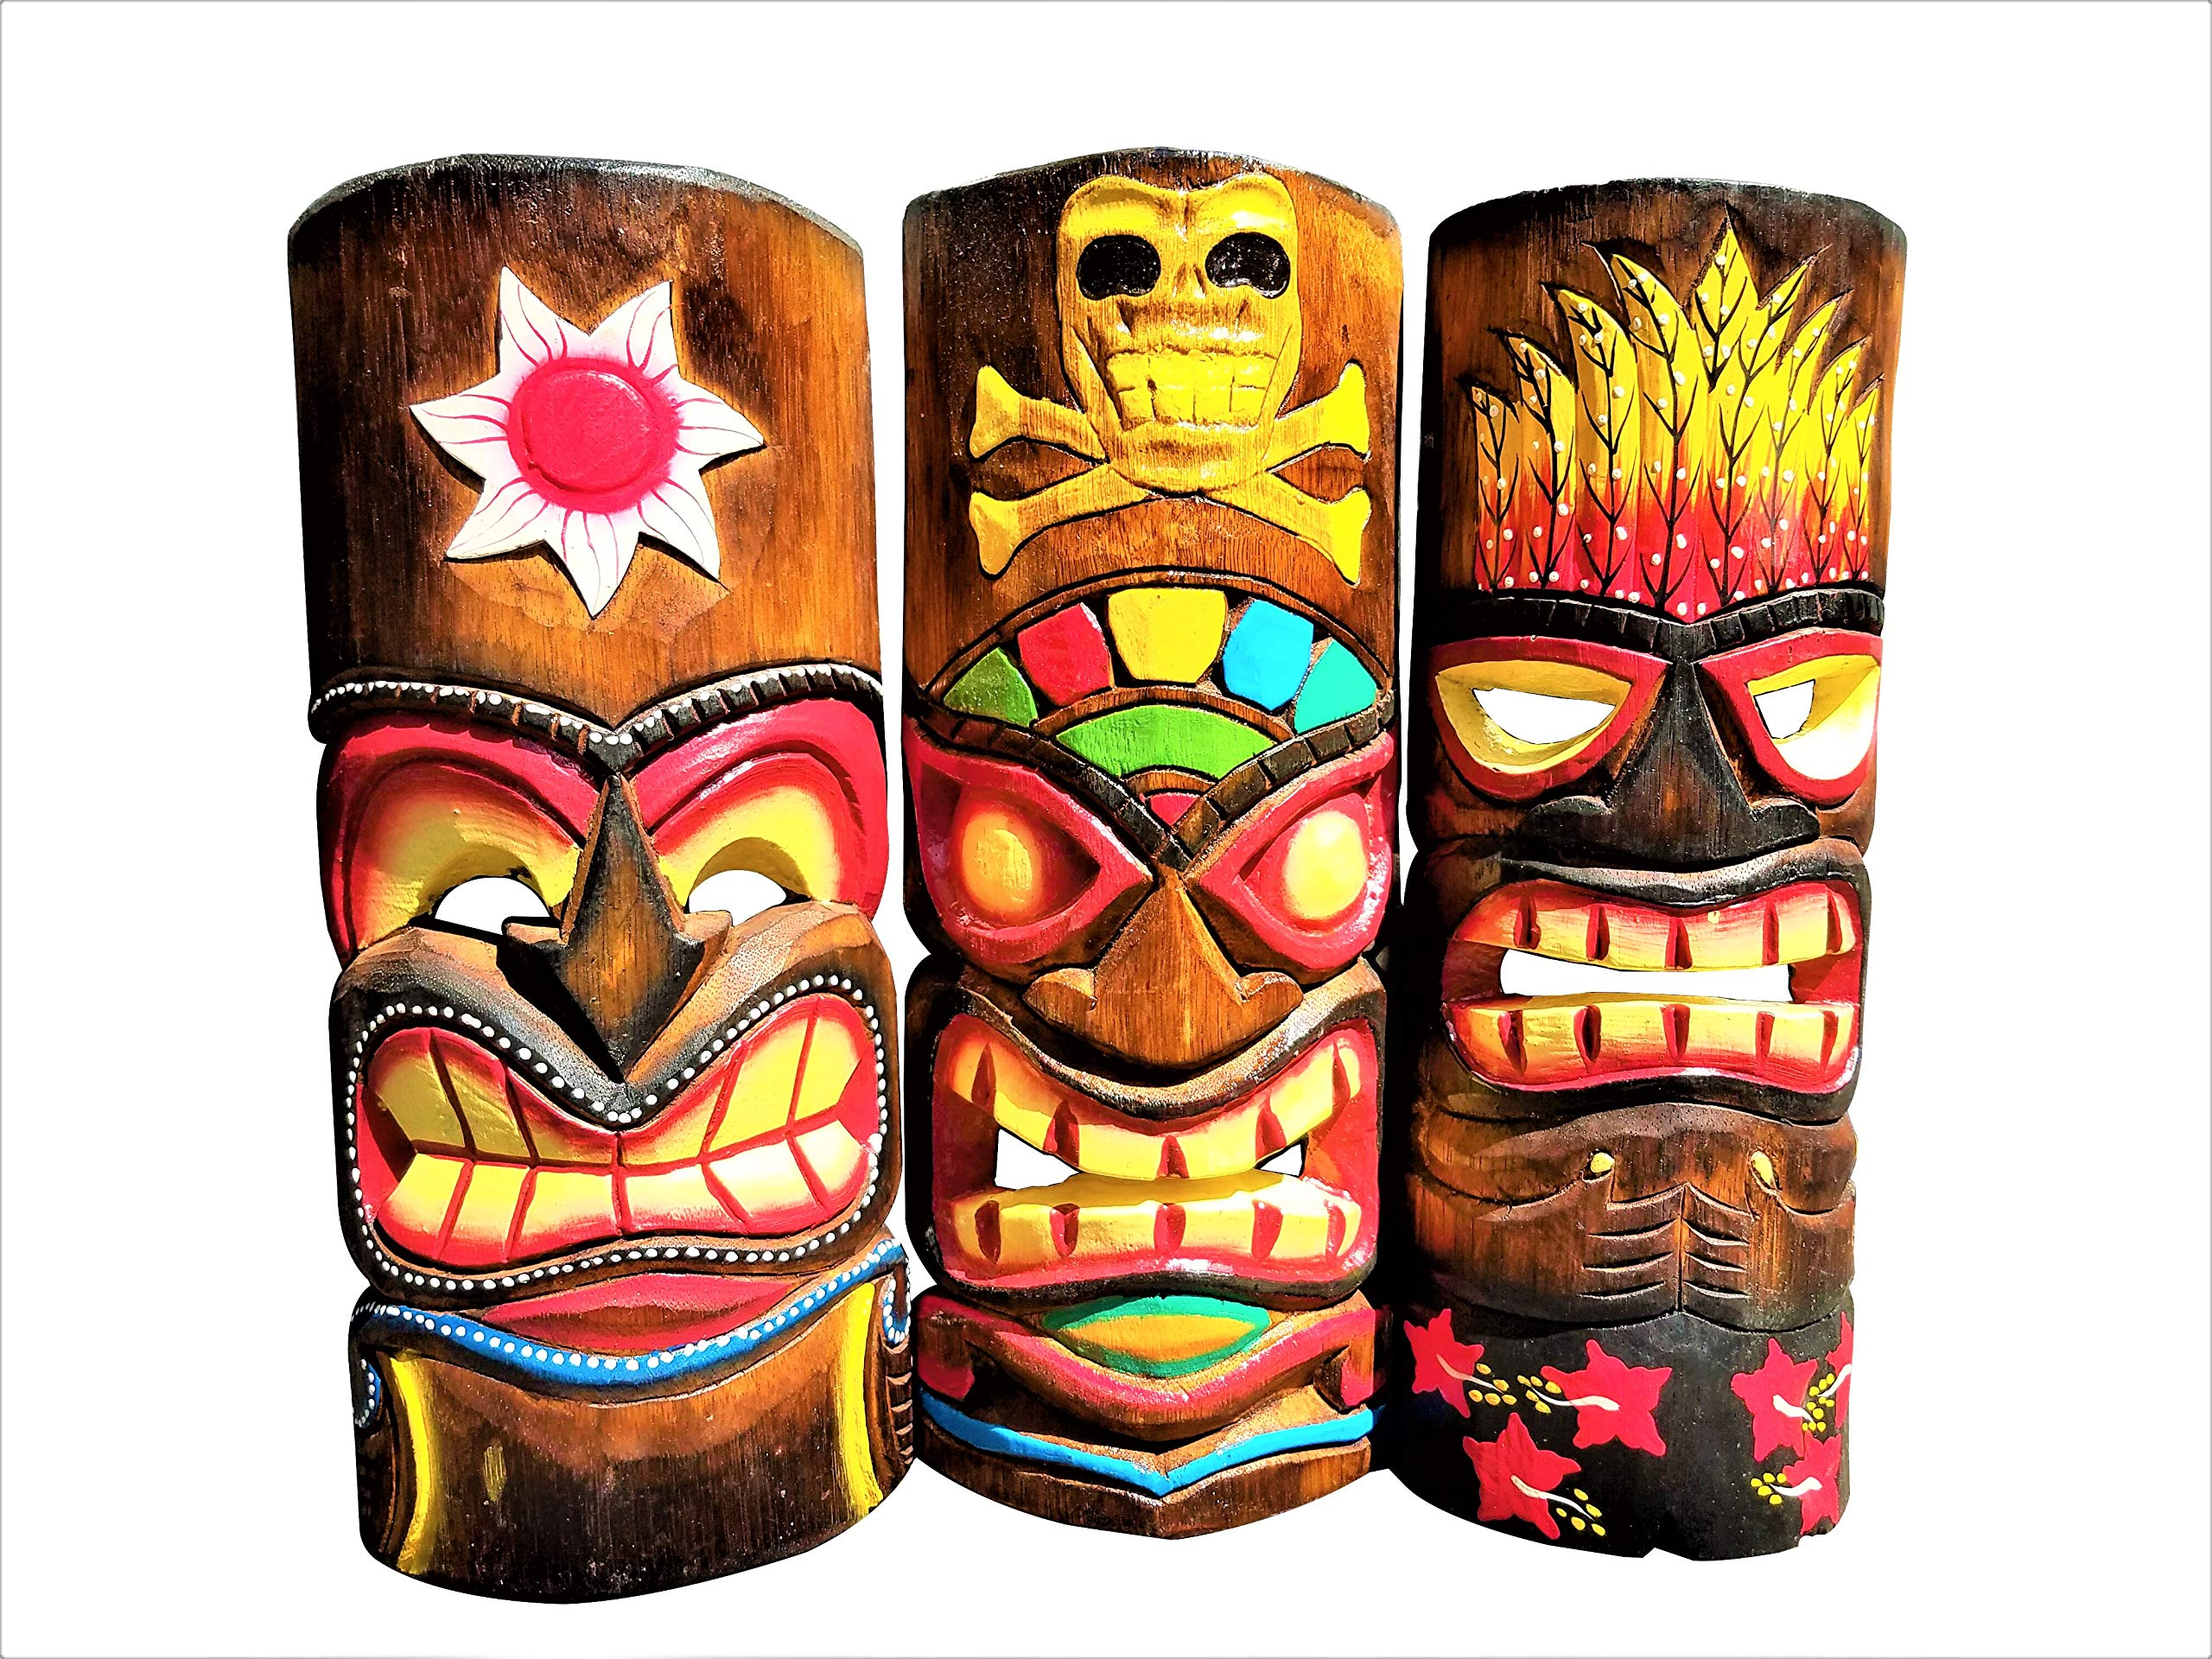 All Seas Imports Set of (3) Wooden Handcarved 12'' Tall Tiki Masks Tropical Wall Decor! by All Seas Imports